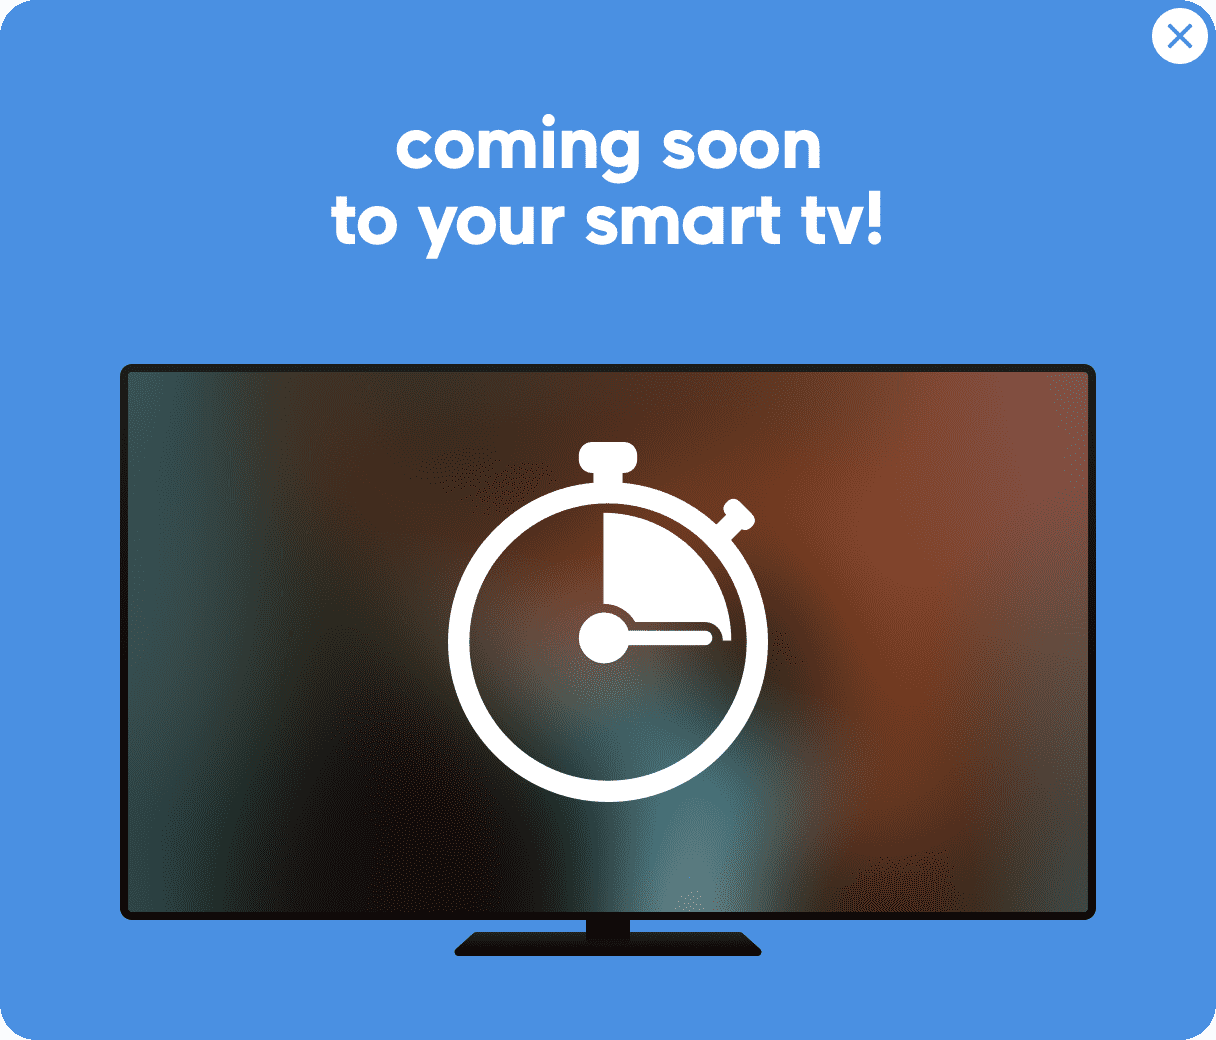 Coming Soon to Your Smart TV